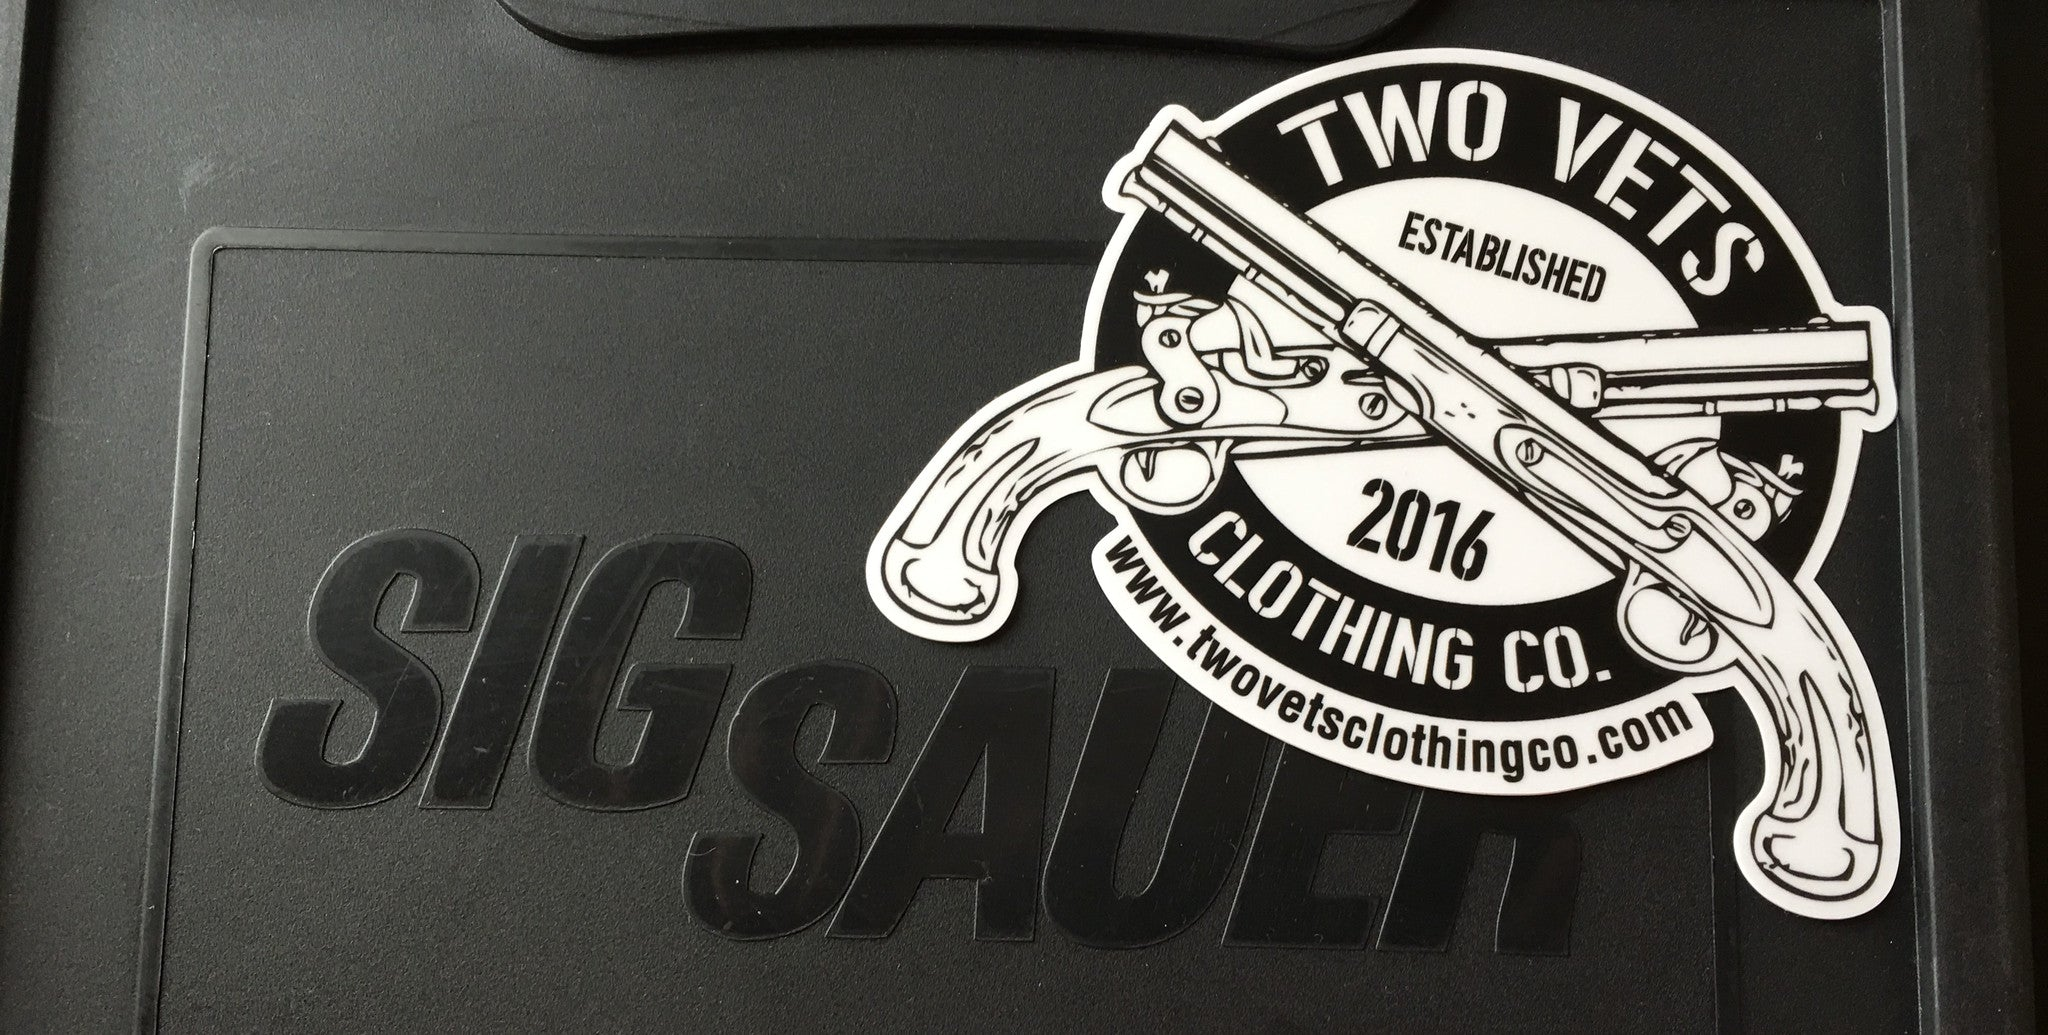 Two Vets Clothing Co. Bumper Stickers